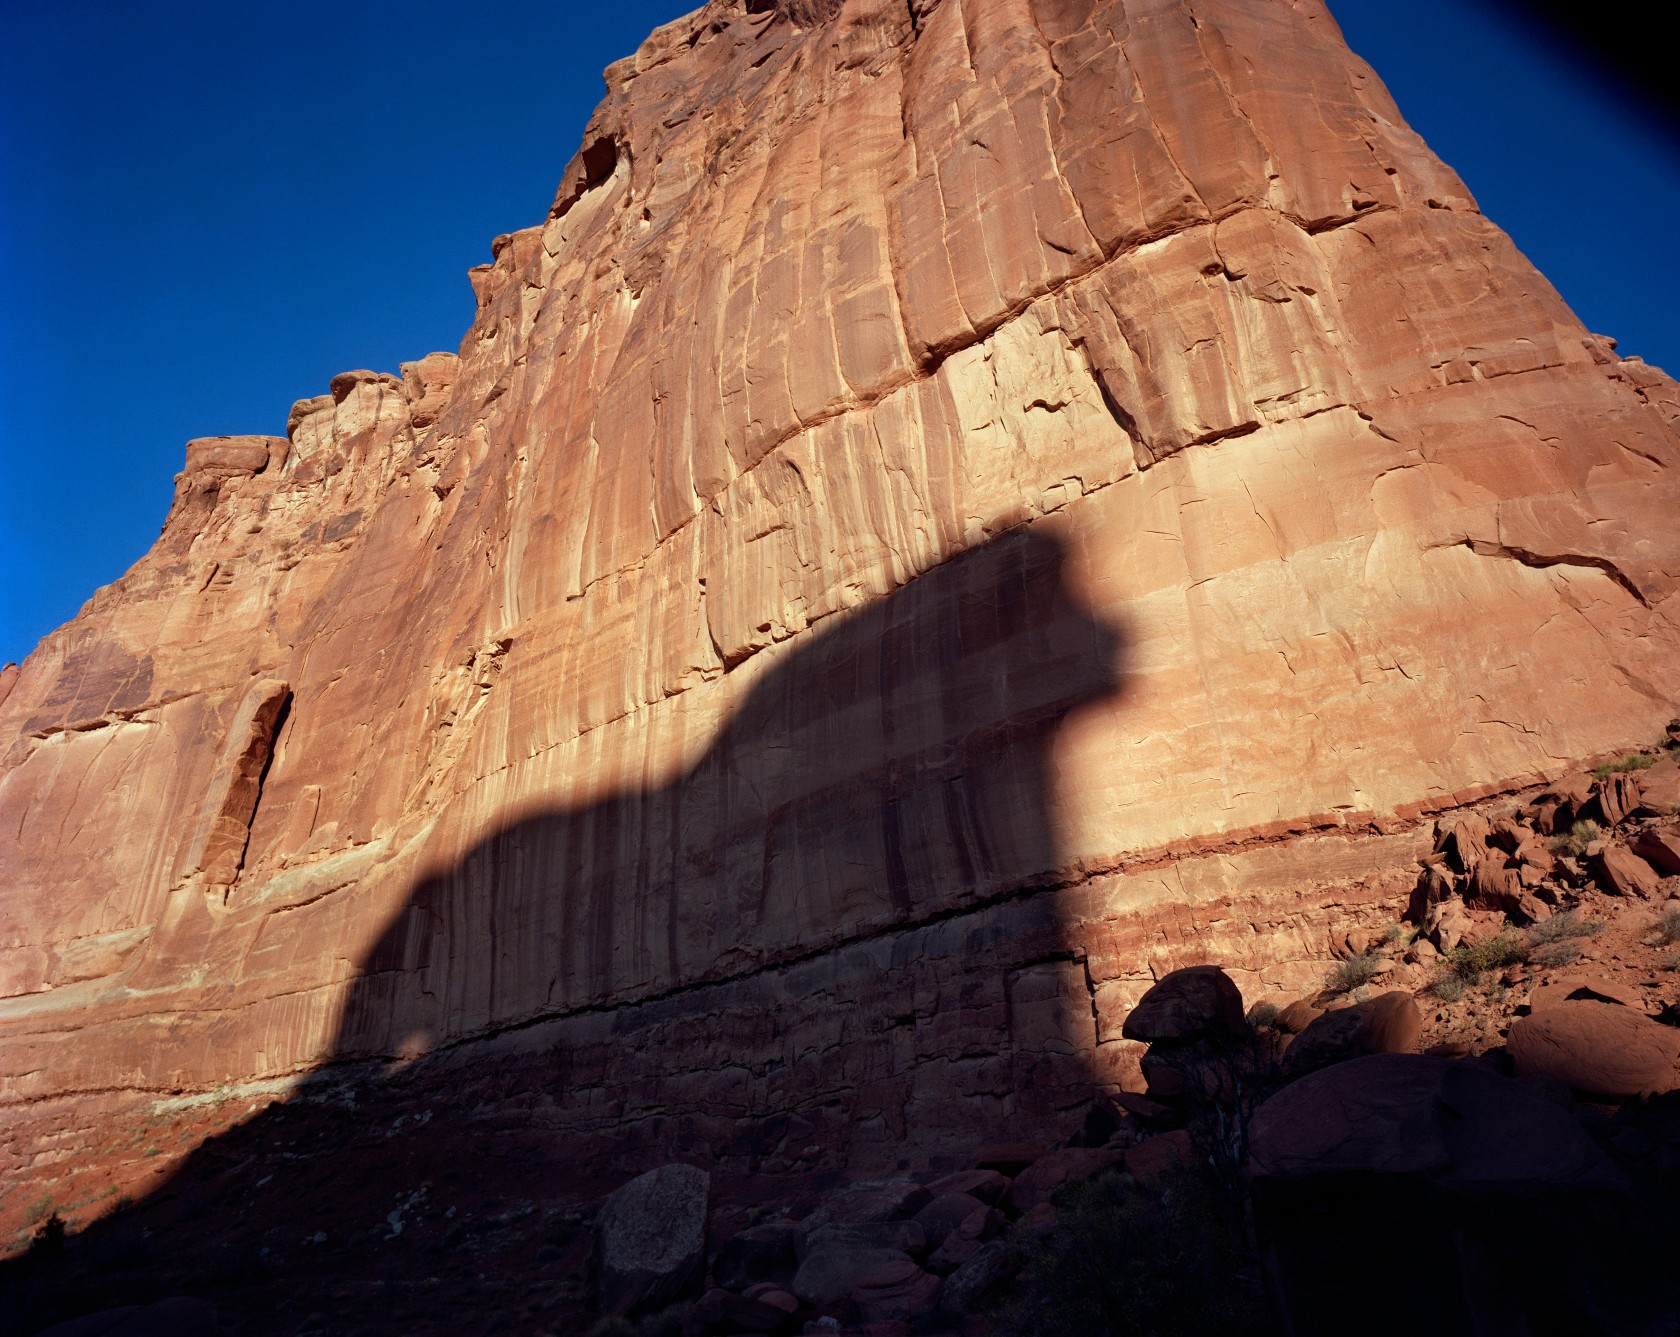 Shadow of a Sphinx